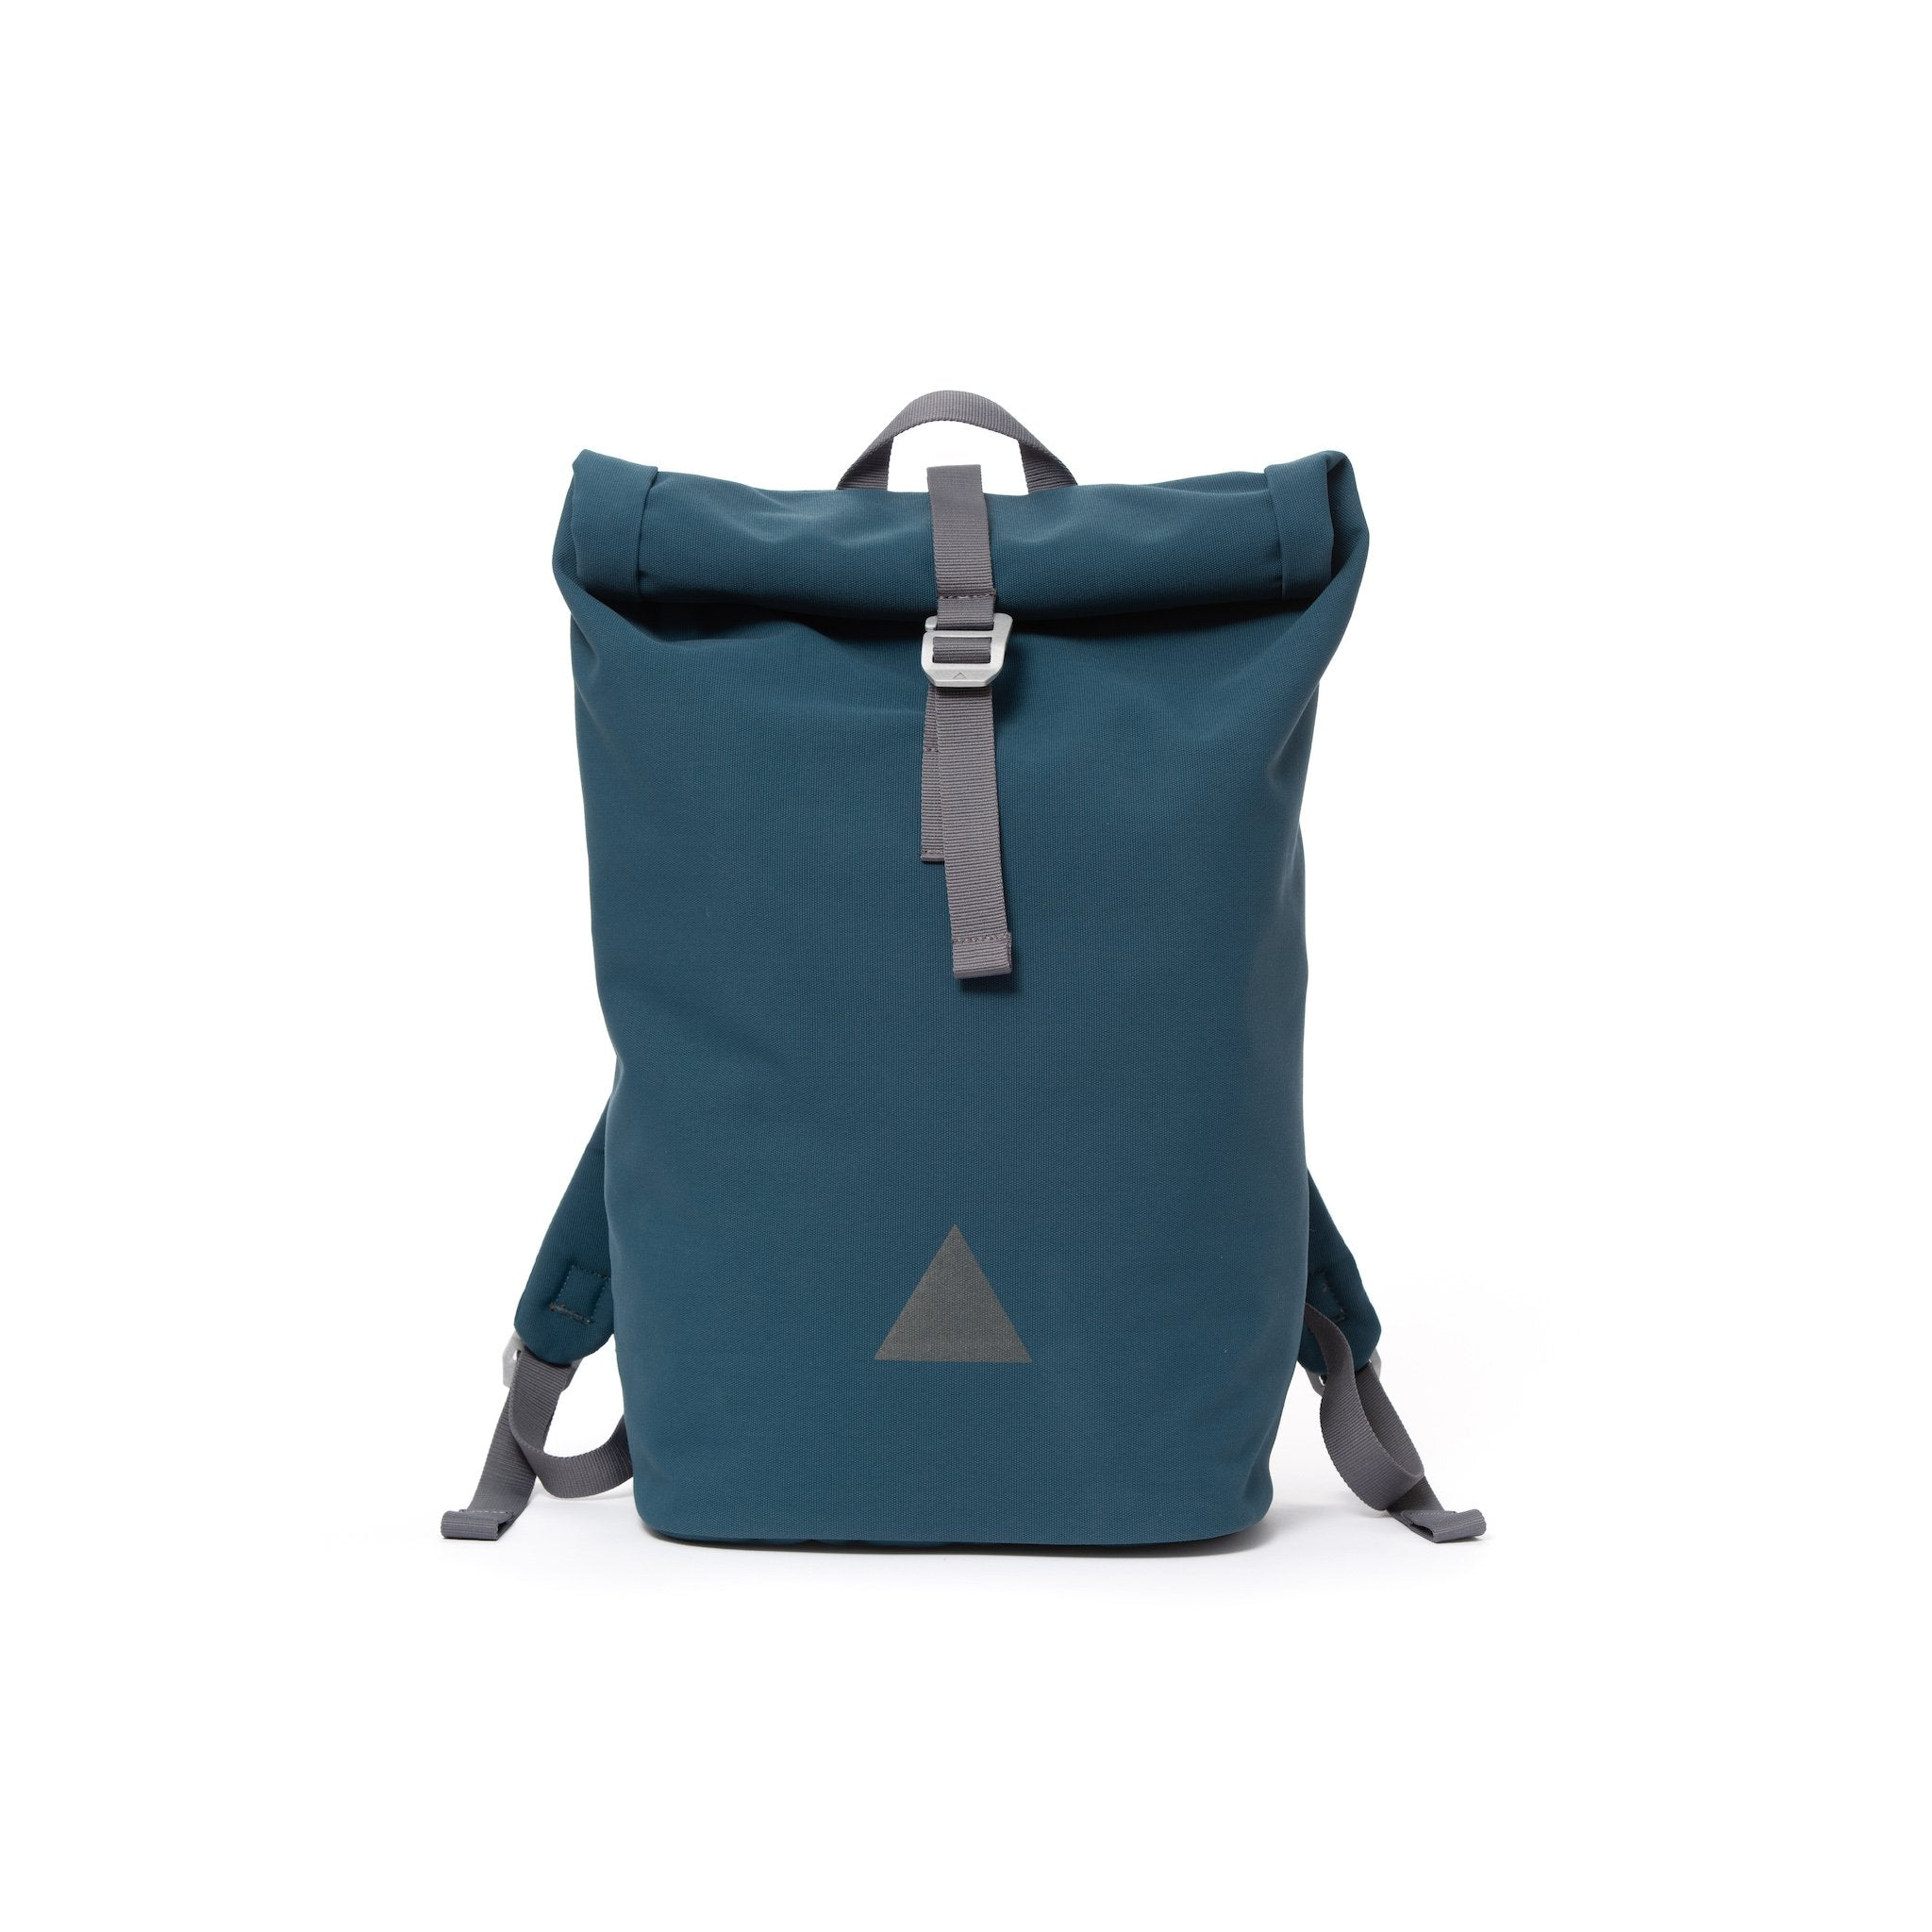 Blue recycled canvas men's rolltop backpack with triangle logo.